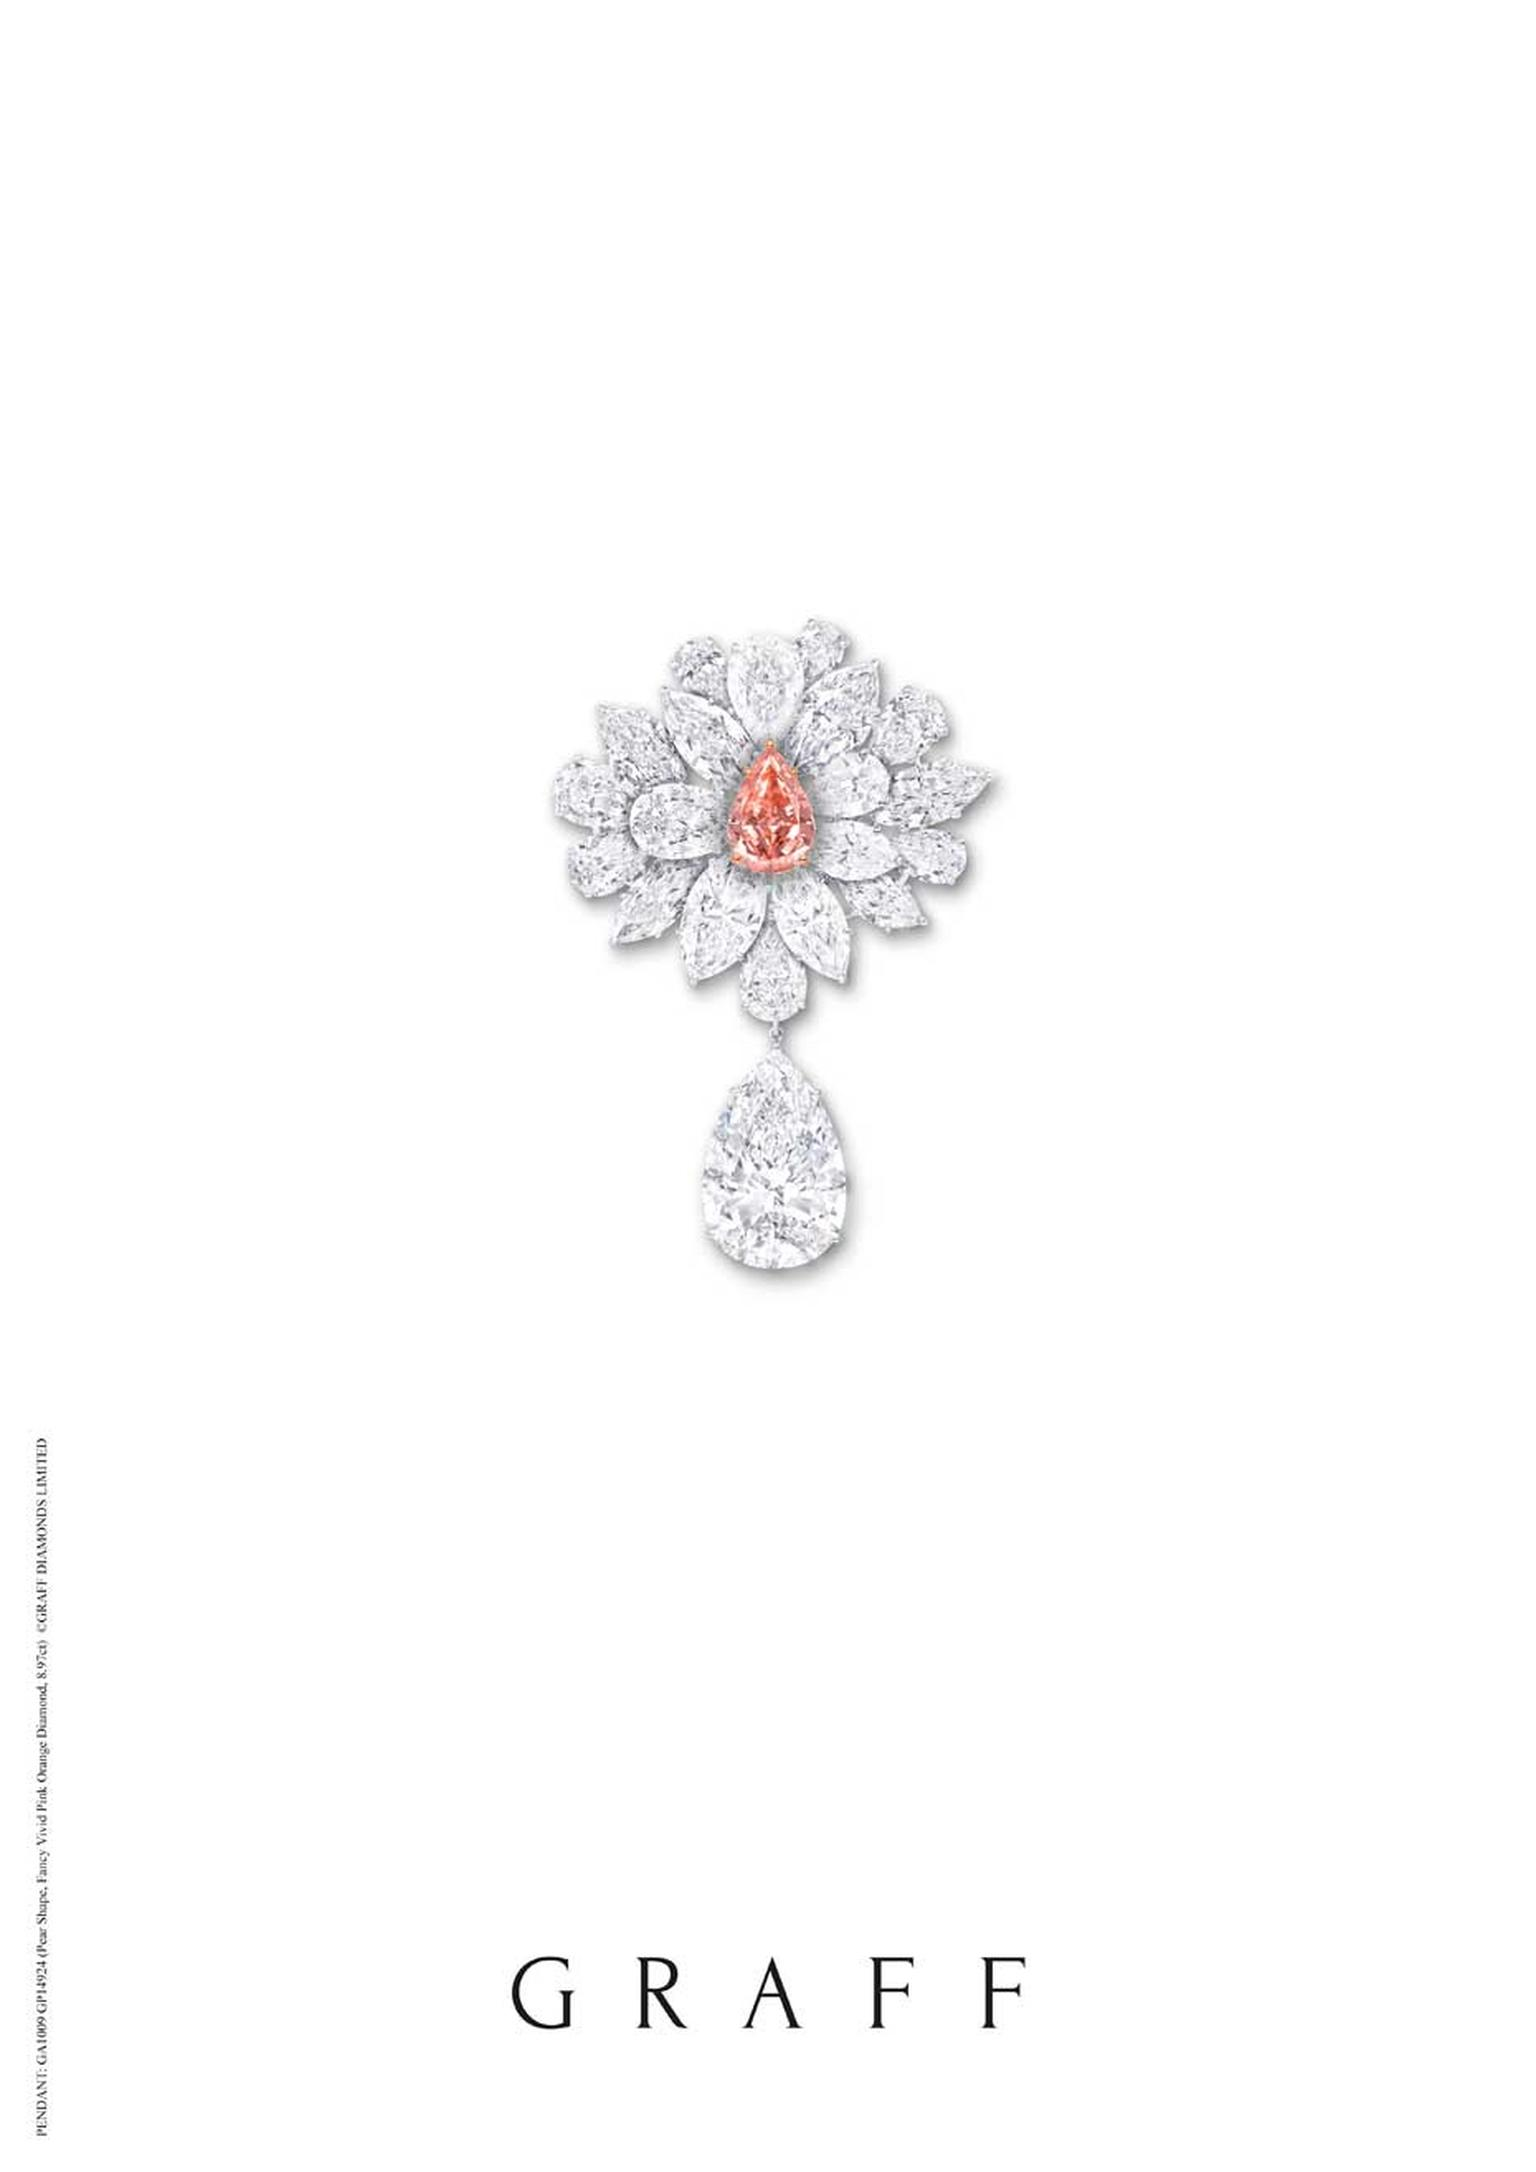 Graff Fancy Vivid pink diamond flower brooch.